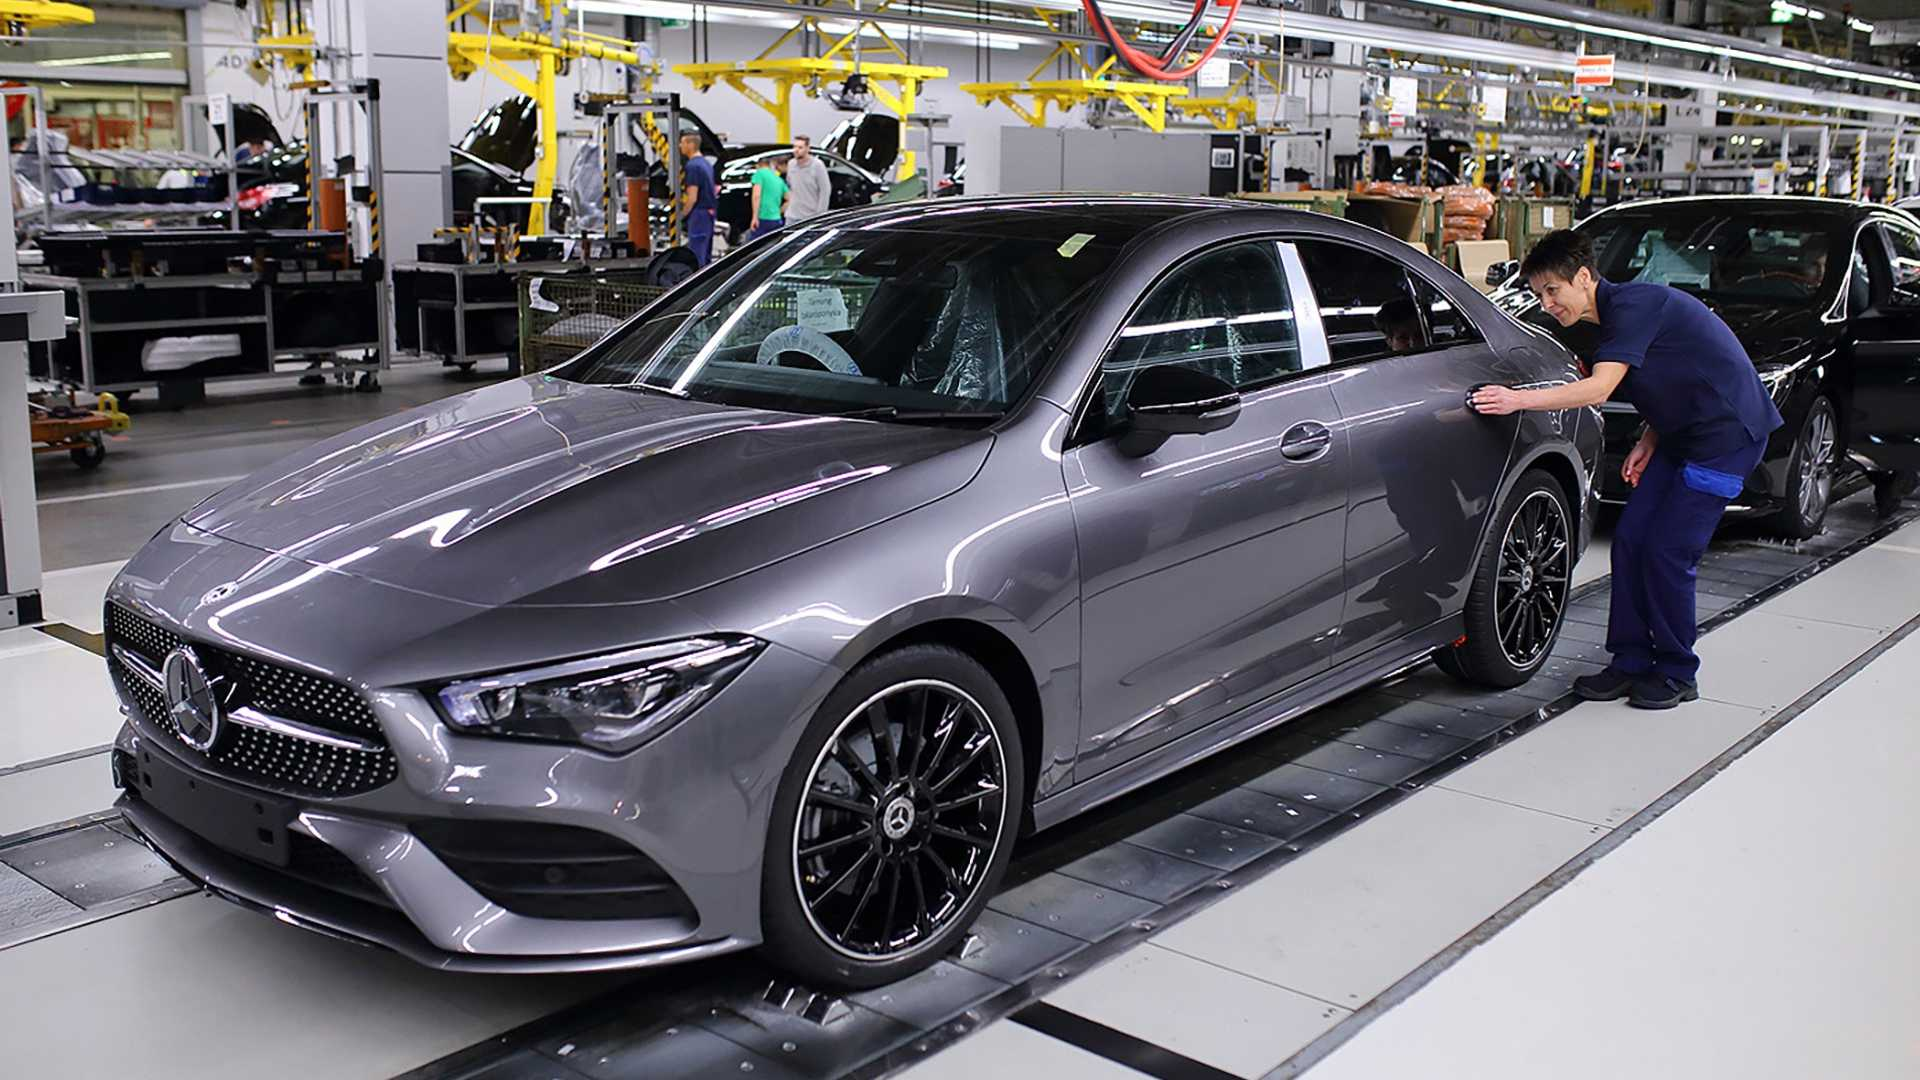 2020 Mercedes Benz CLA Class Production Motor1com Photos 1920x1080